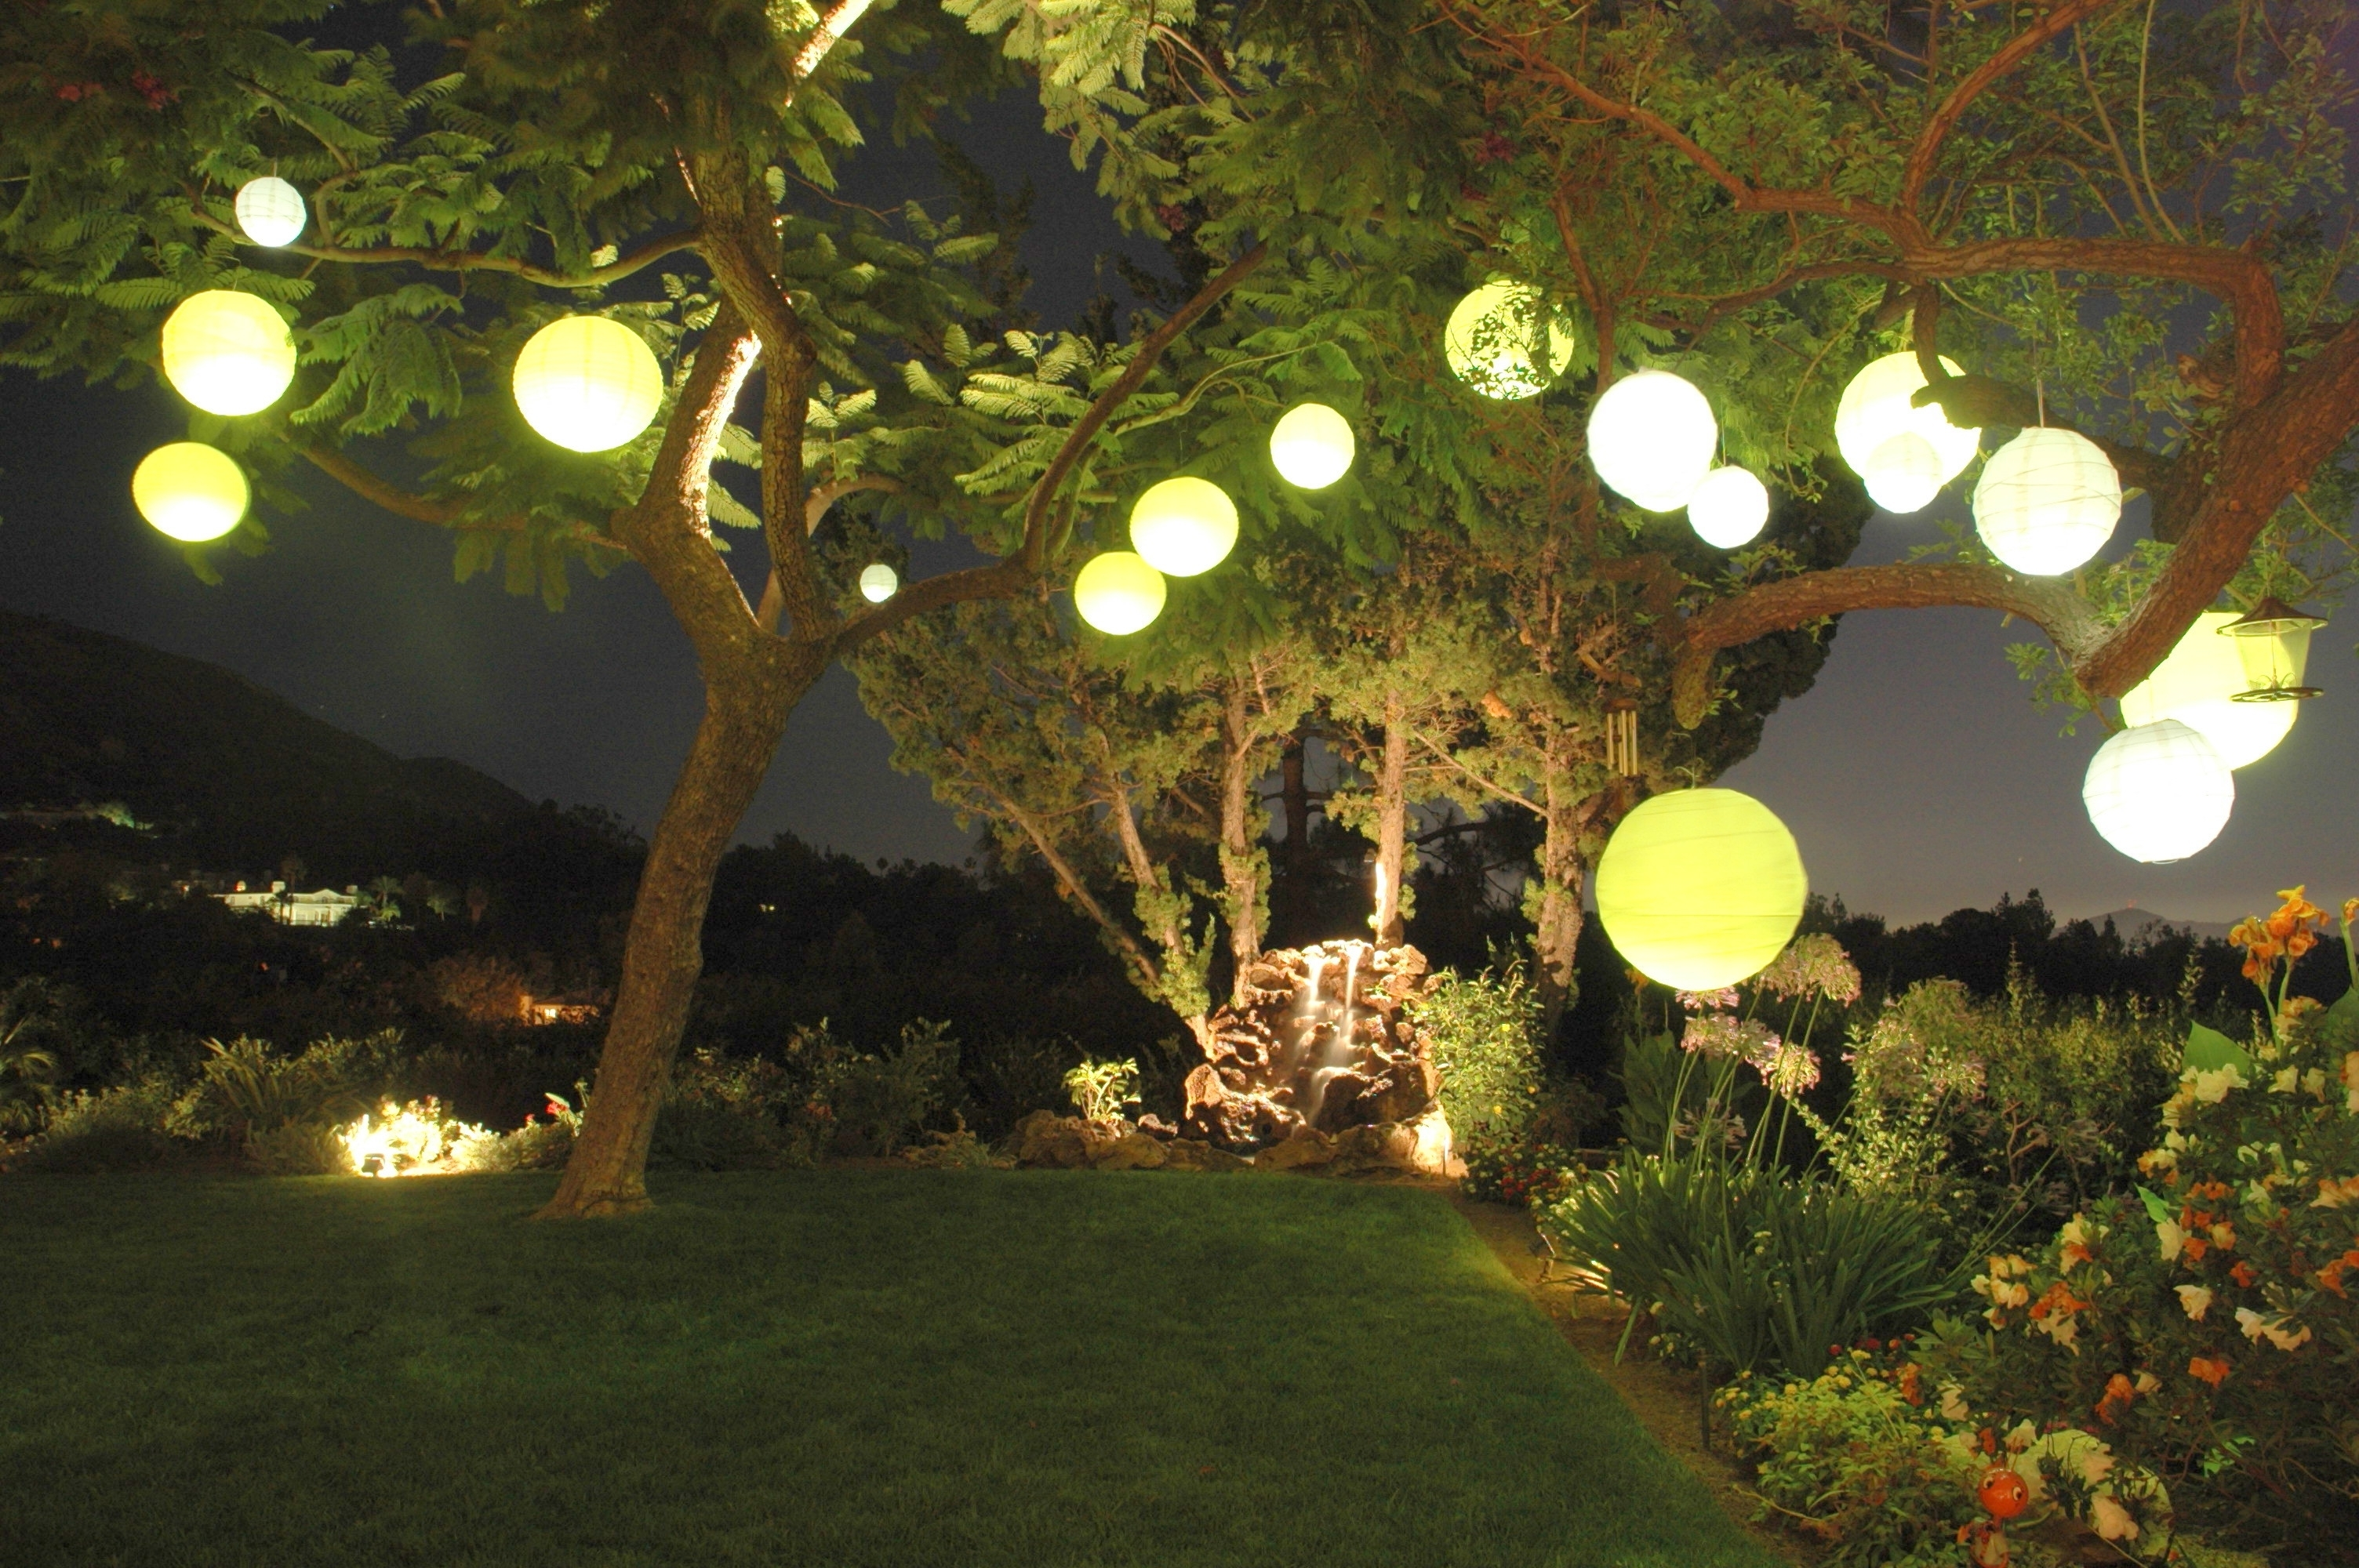 Well Known Outdoor Paper Lanterns Regarding Decorating: Garden Party With Paper Lantern Light (View 17 of 20)